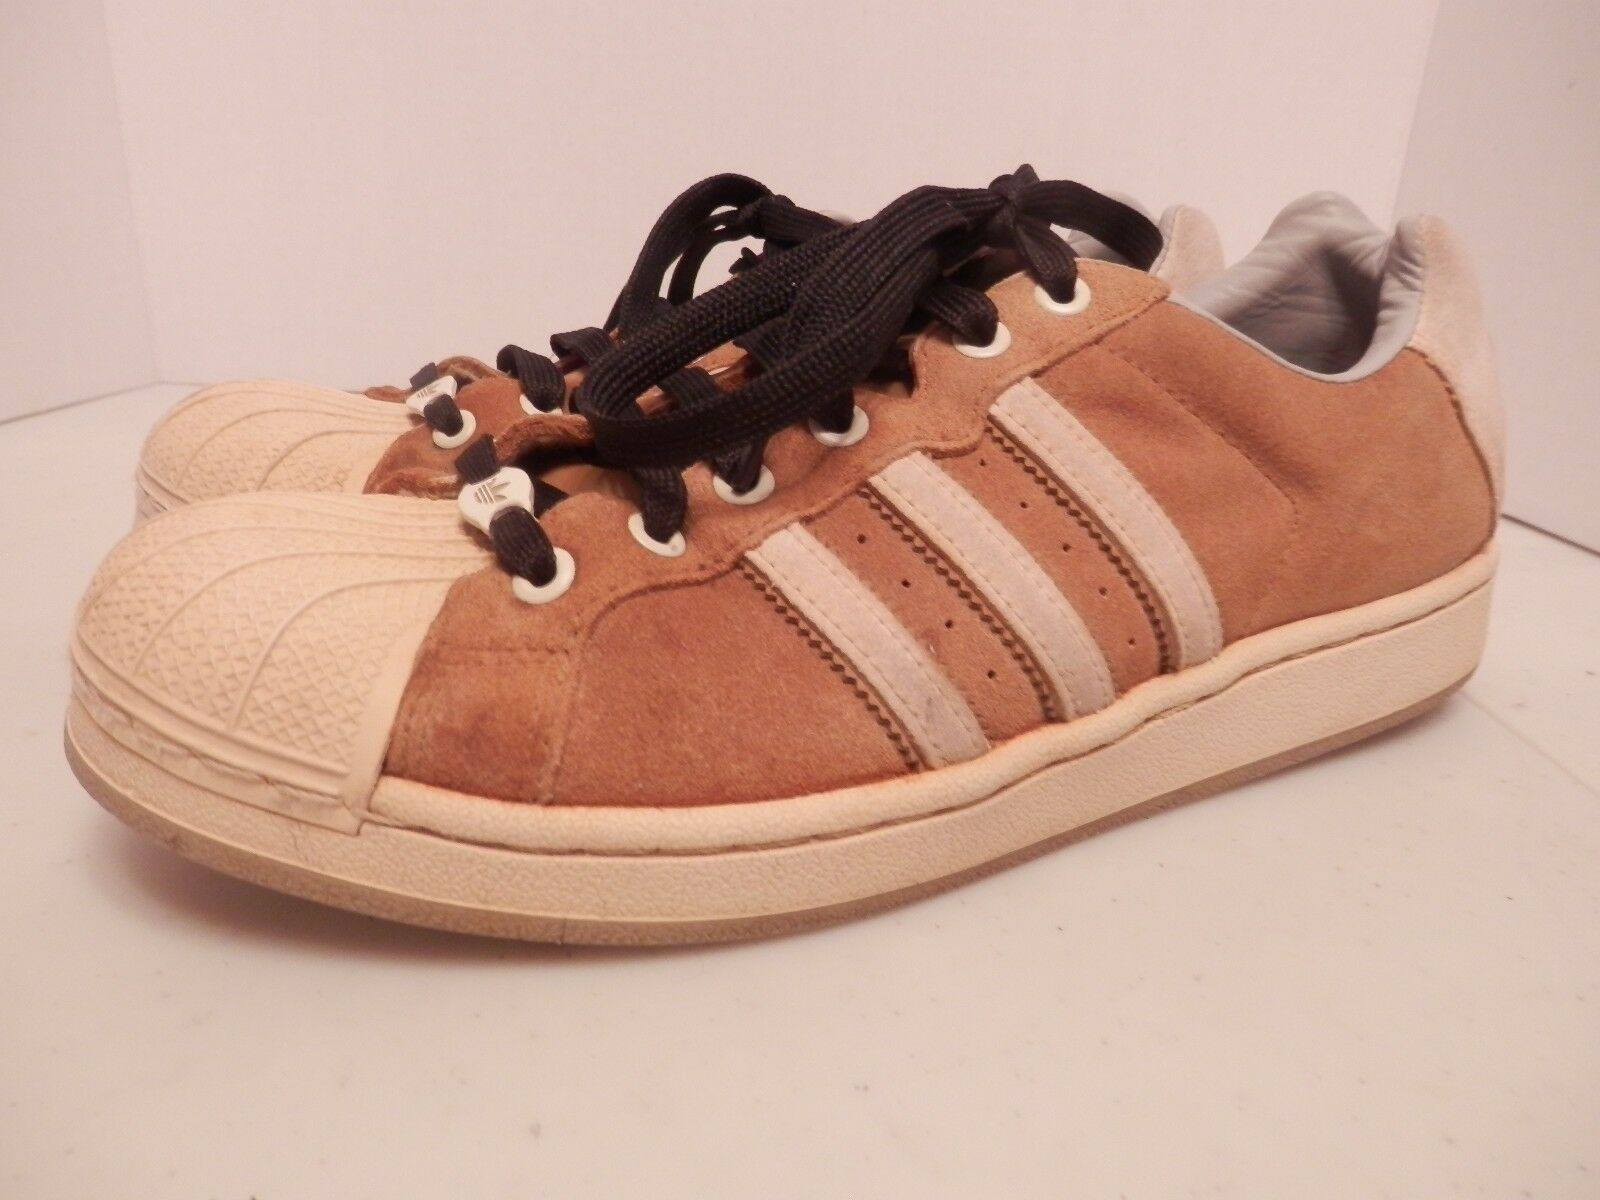 Adidas Brown Leather Tri Striped Running Shoes-Comfortable